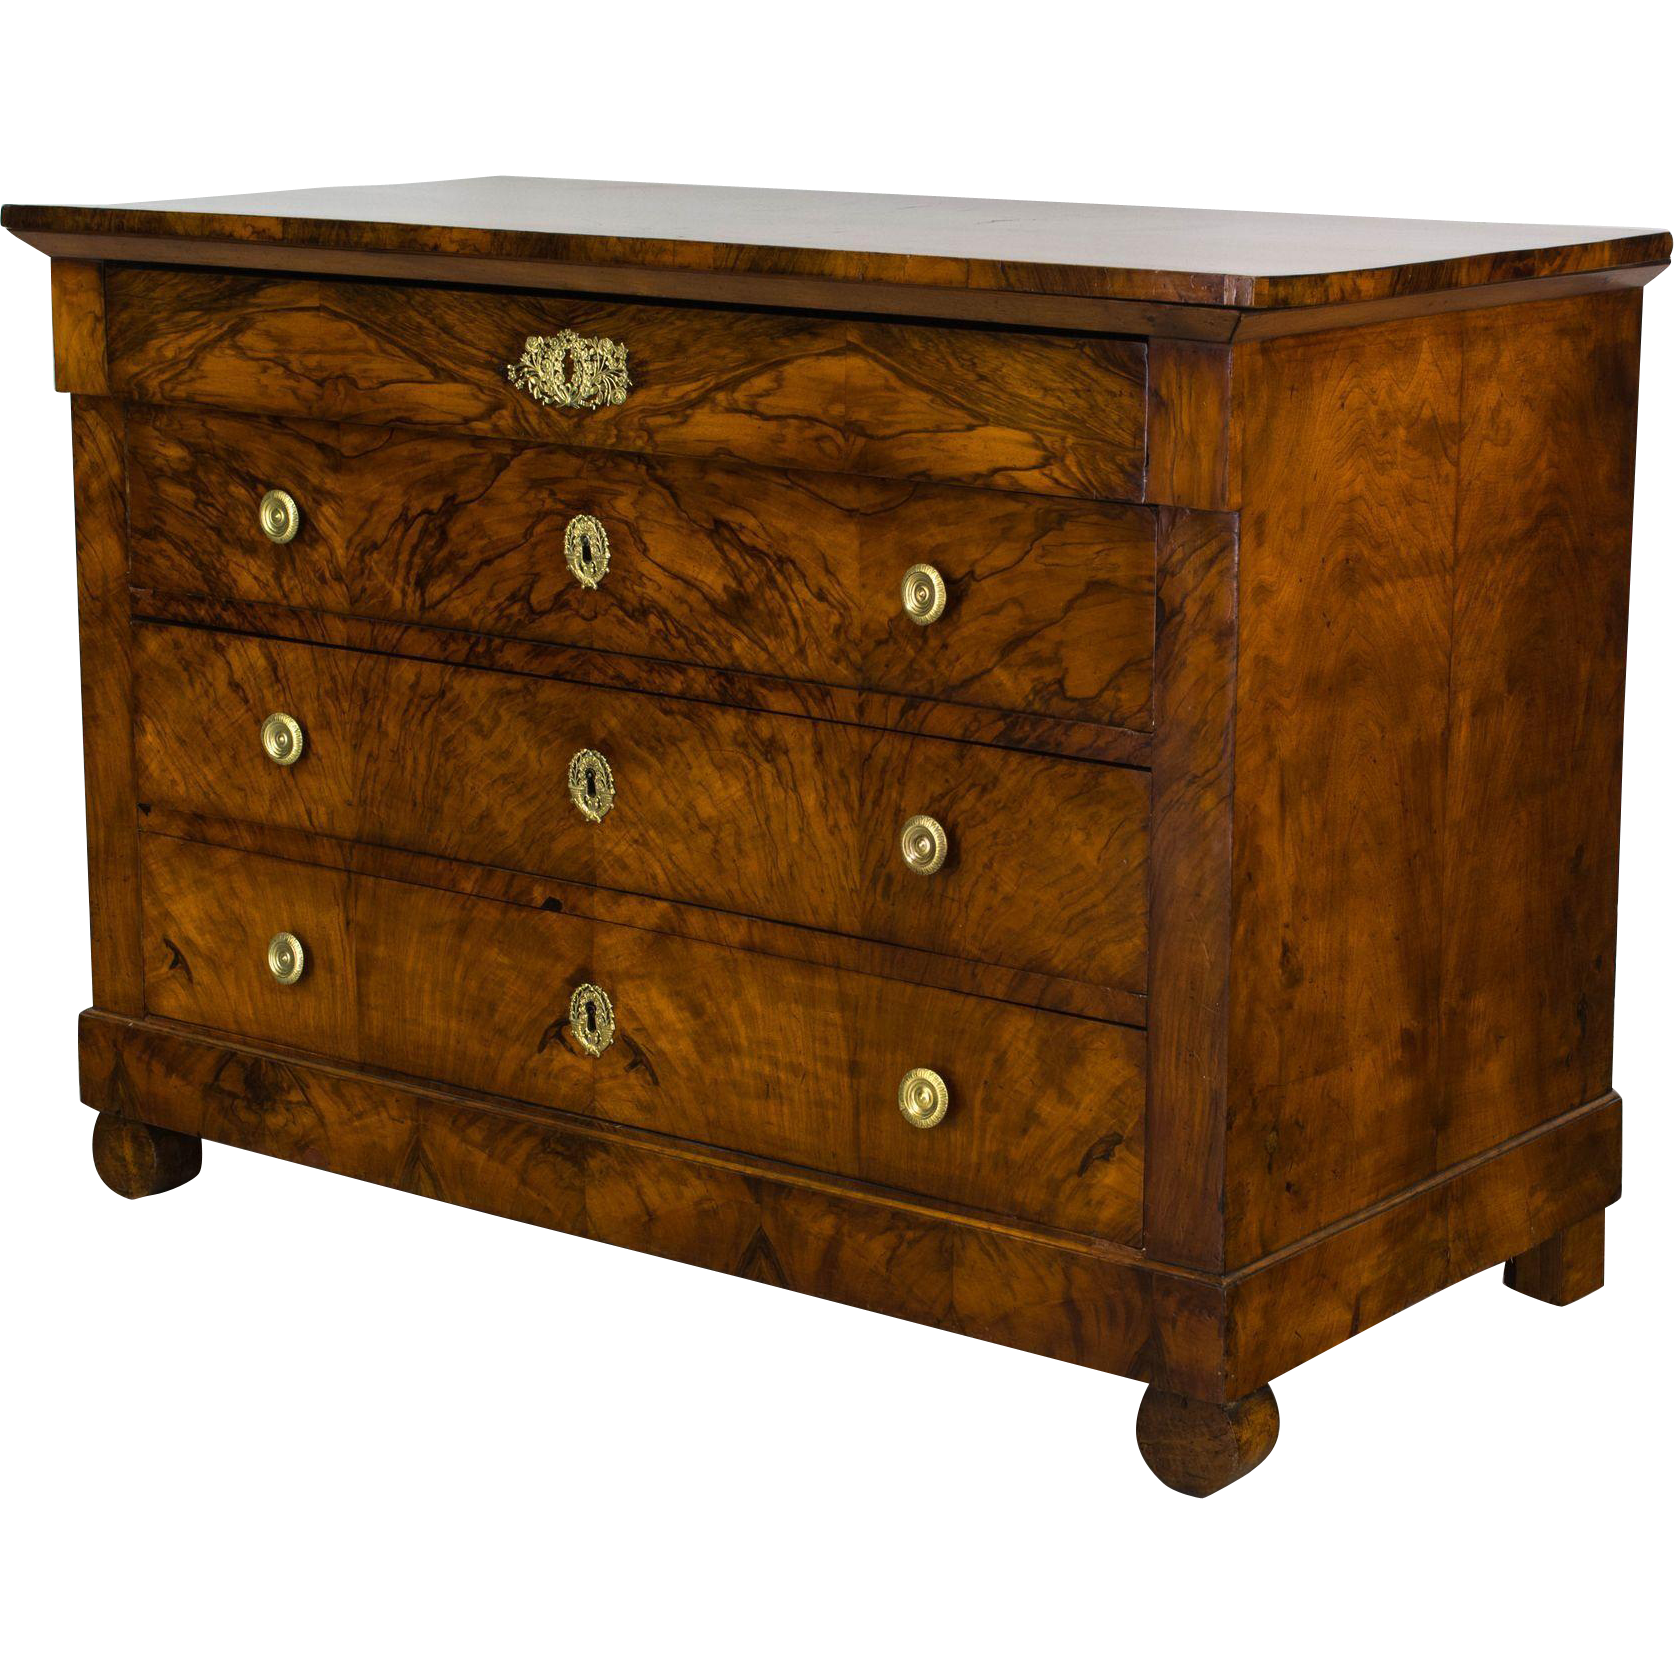 19th. c. French Restauration Period Commode